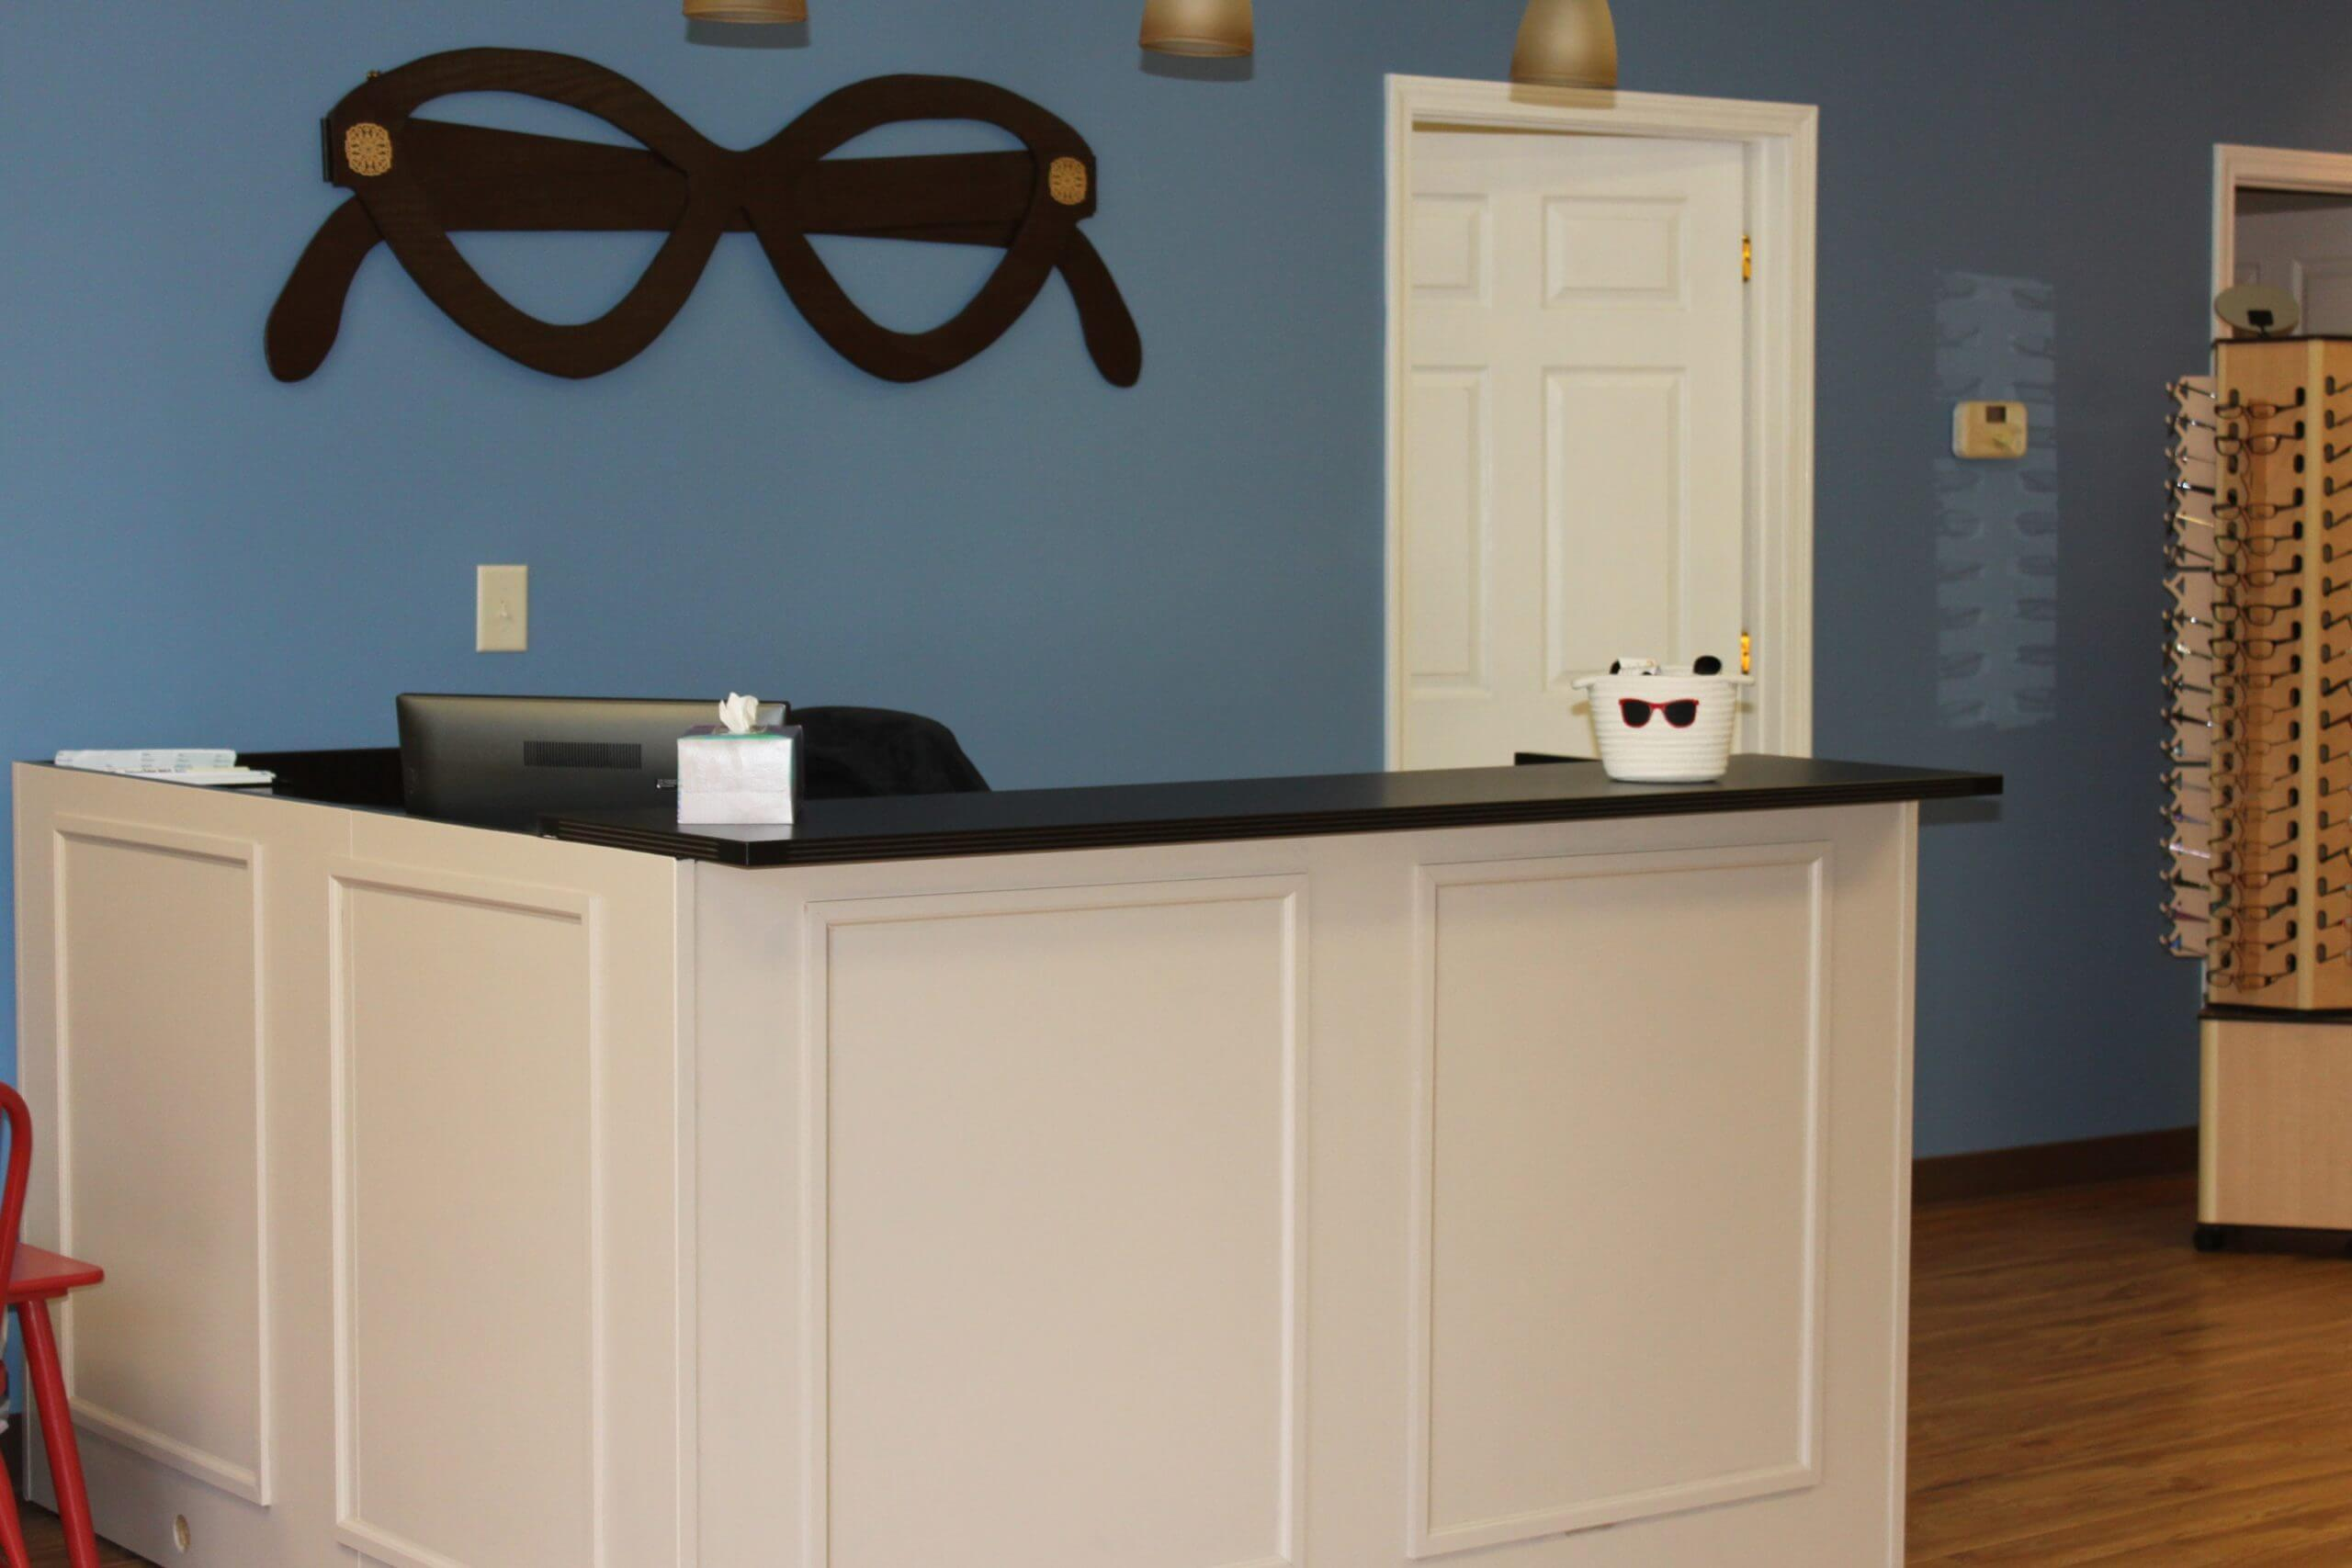 Front desk Bowers scaled